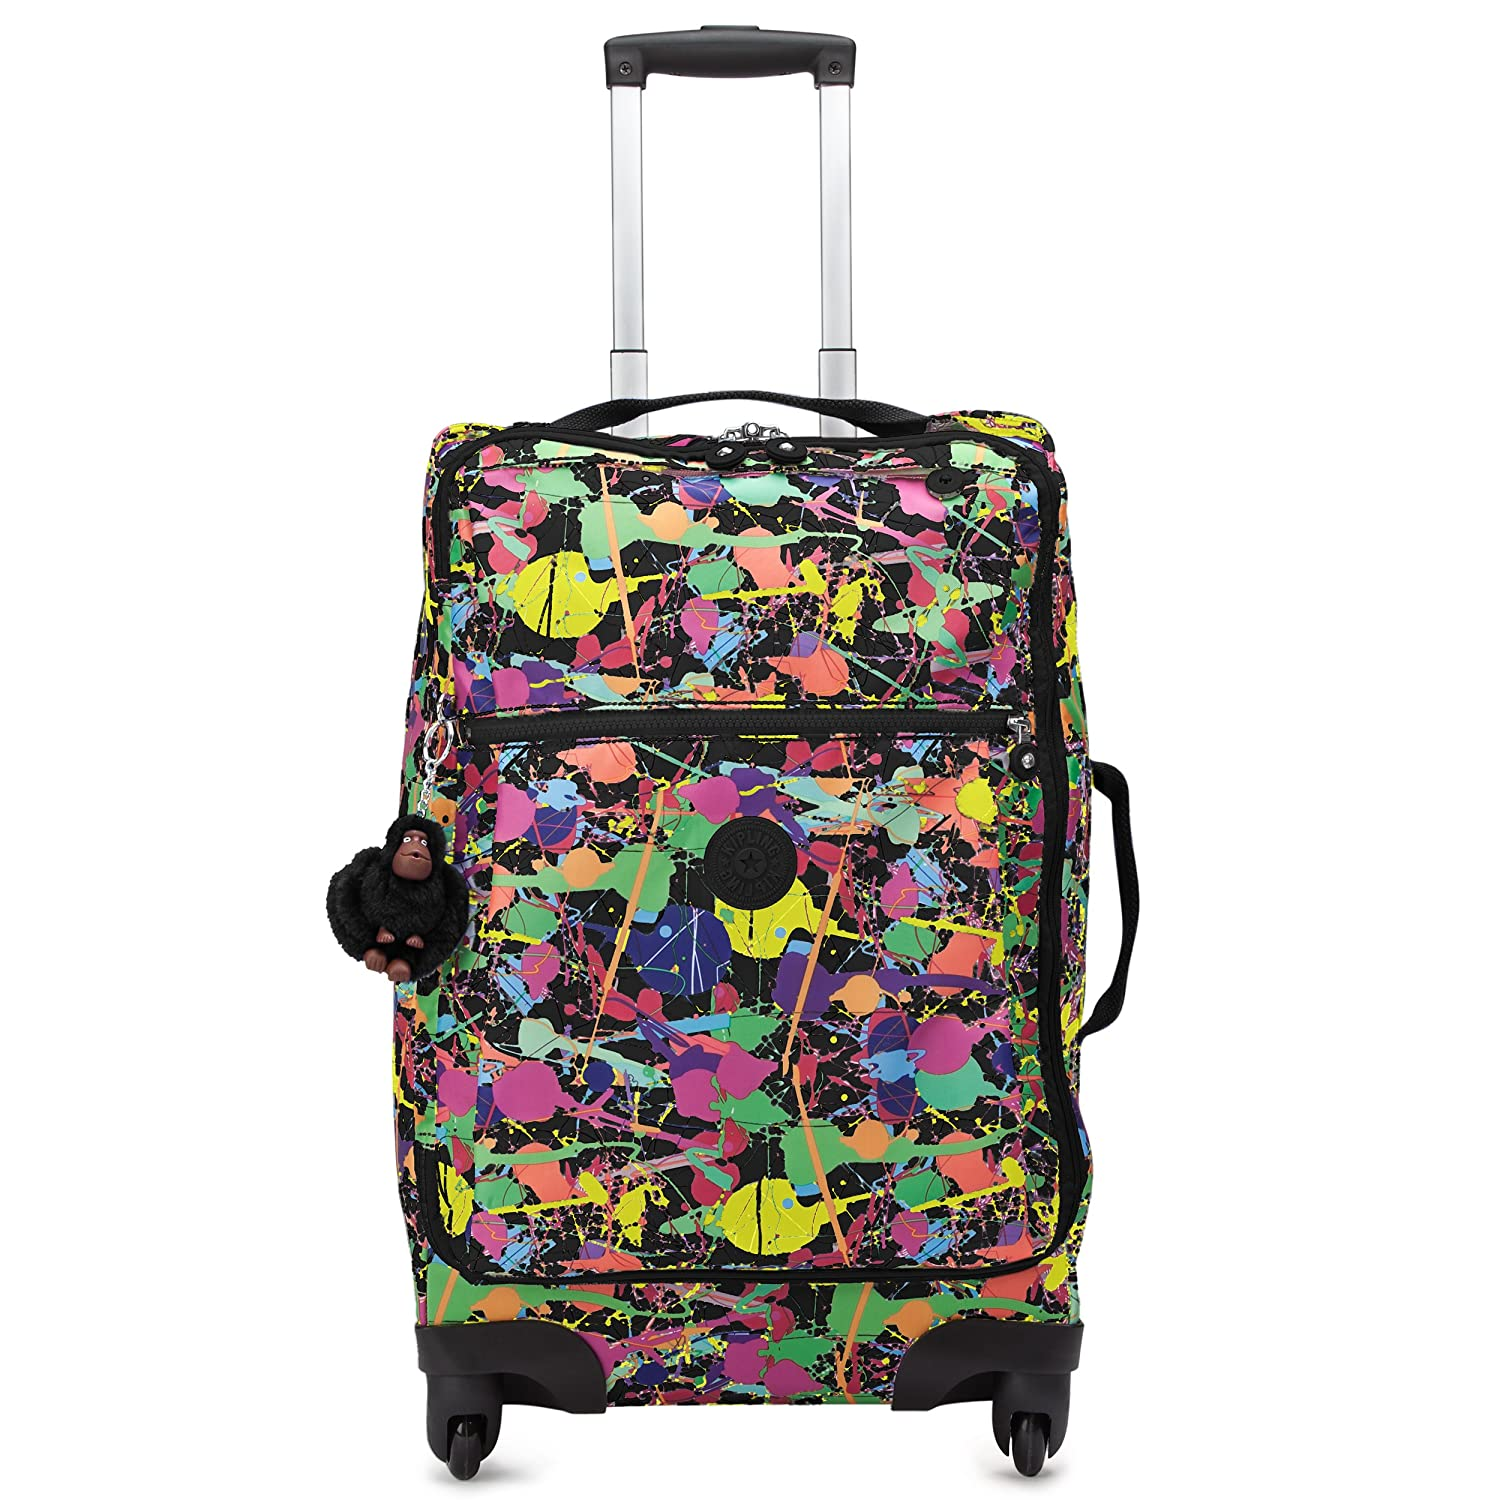 Kipling Darcey S Carry-On, Black, One Size KIV6P WL4766